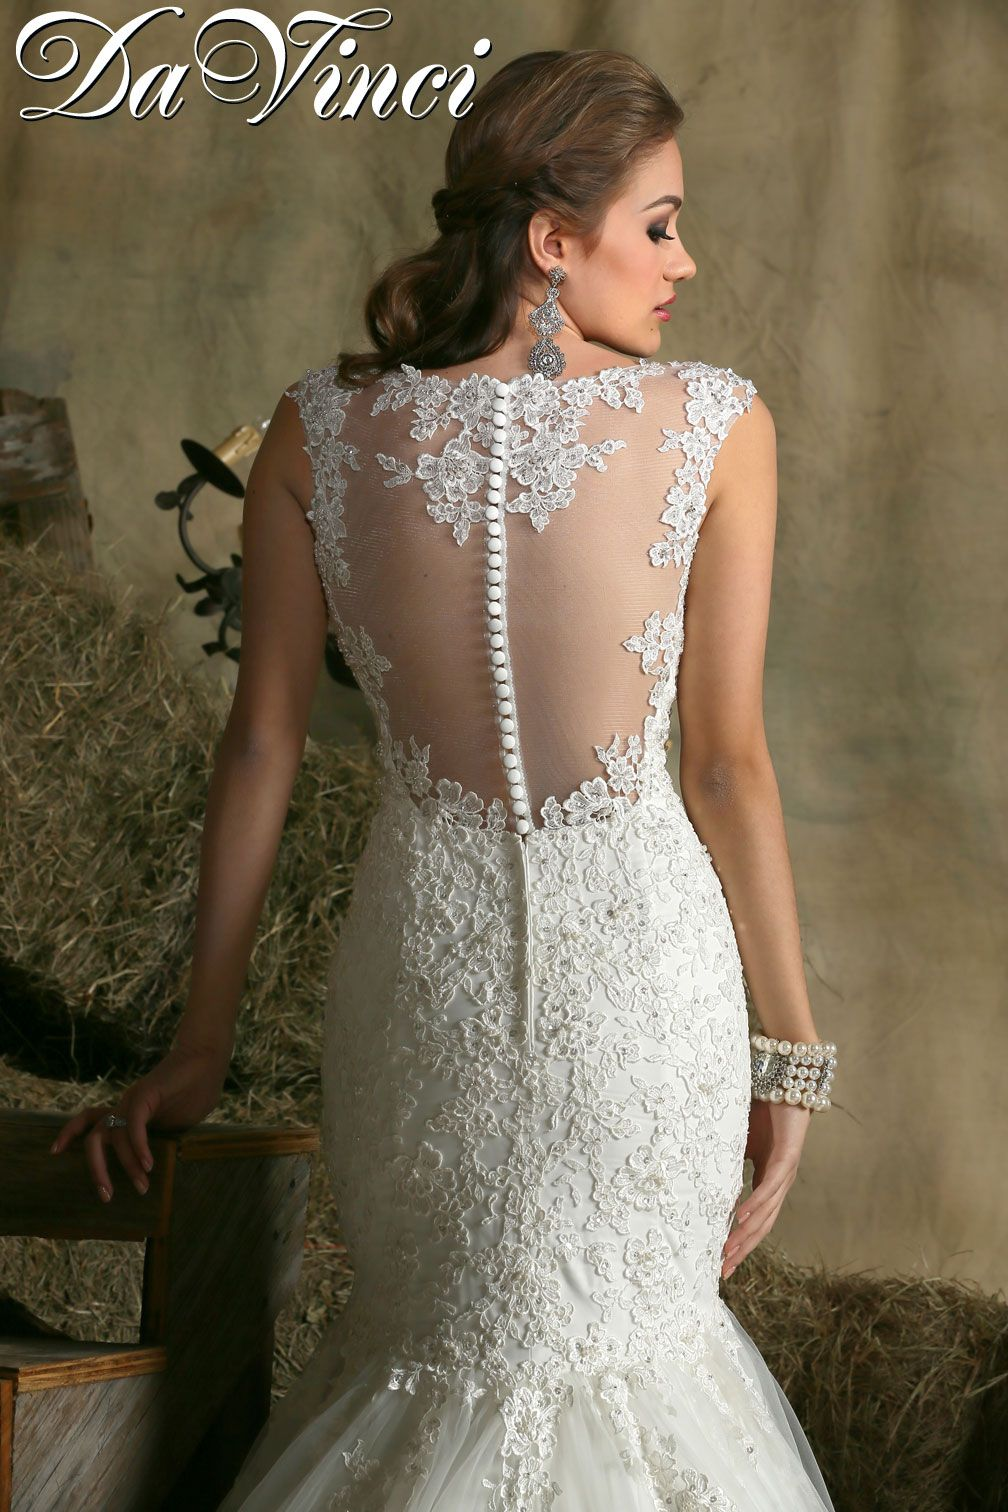 Davinci style is a lace and tulle mermaid wedding dress with